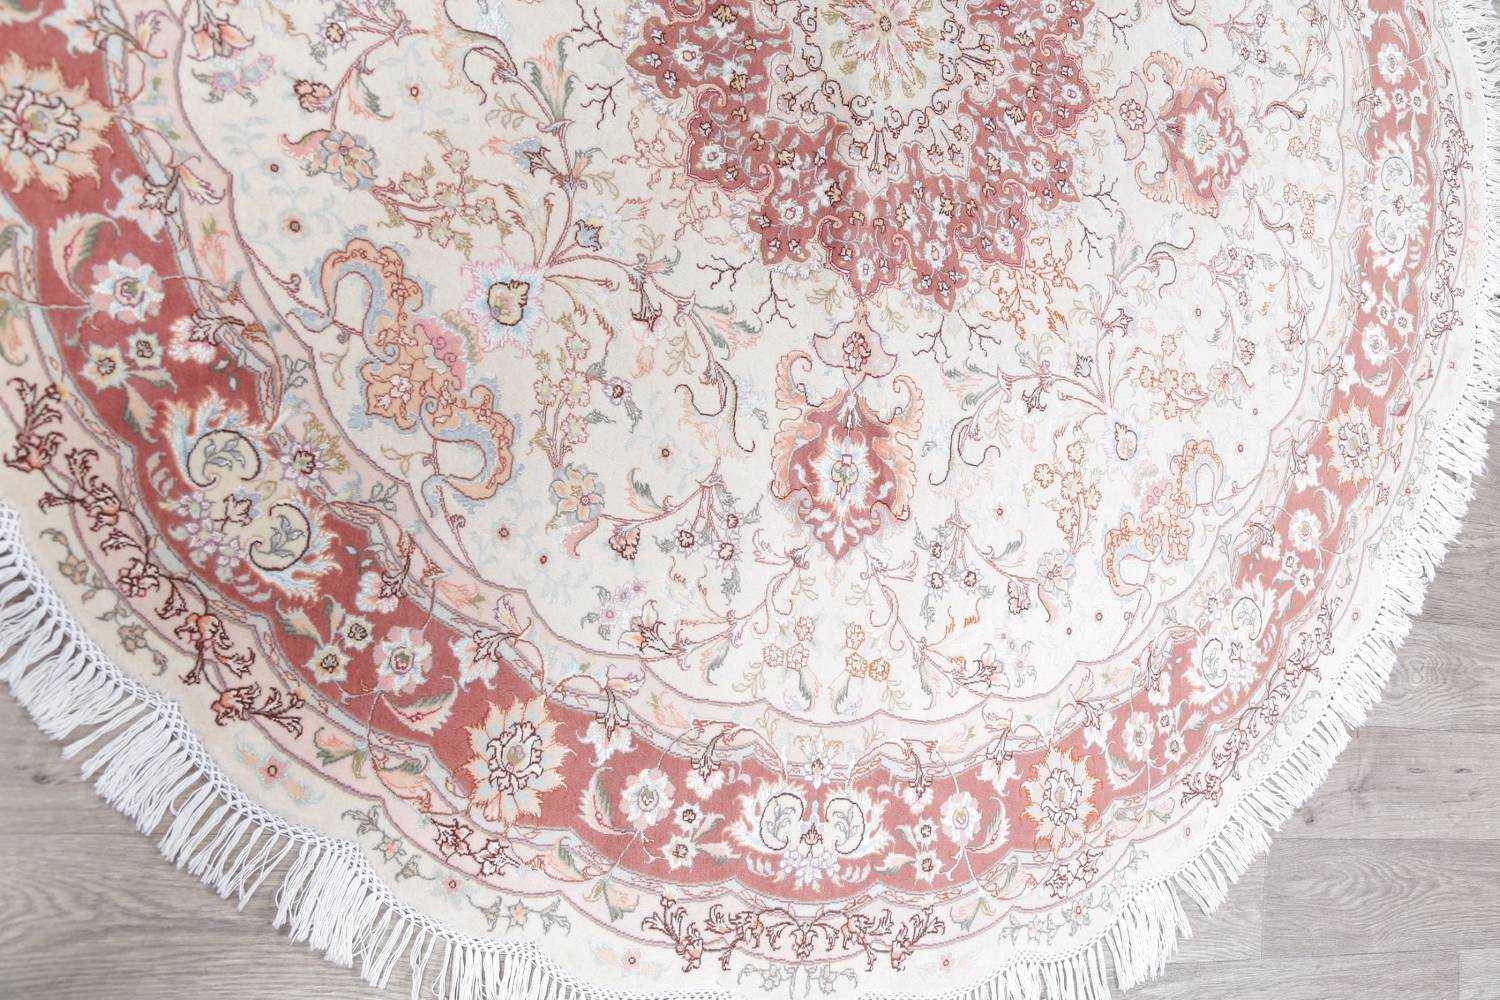 Vegetable Dye Floral Ivory Tabriz Persian Hand-Knotted Round Rug 7x7 image 13